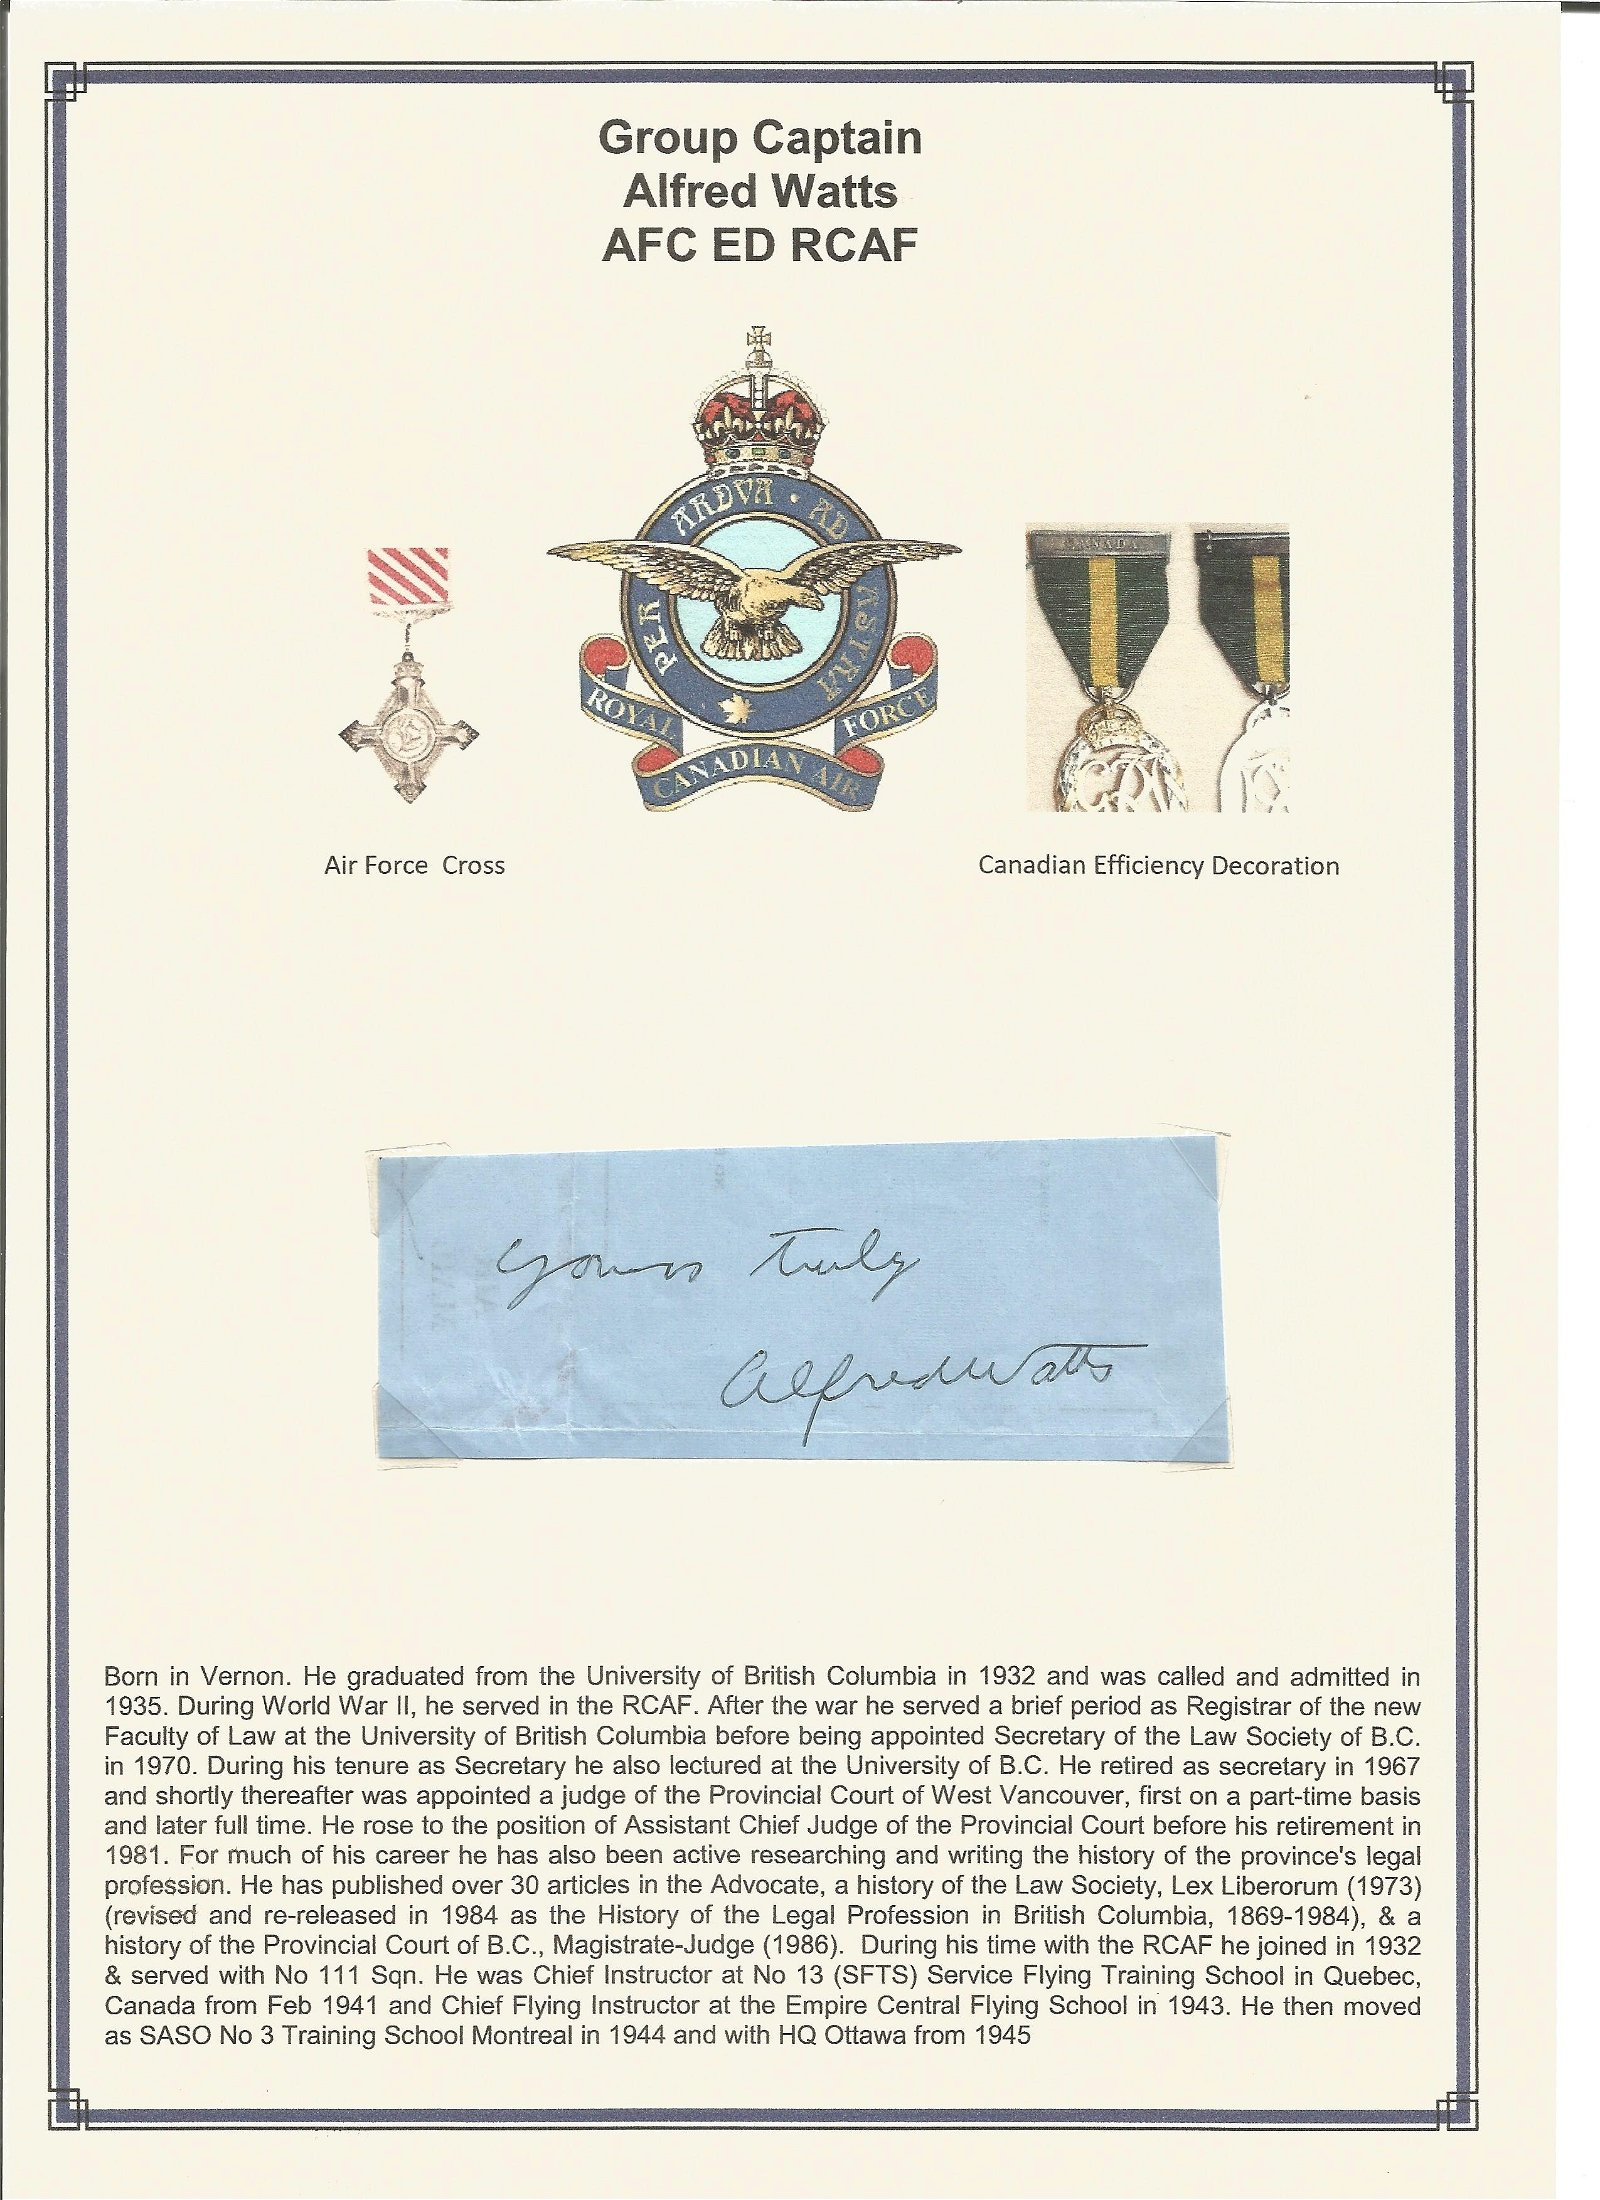 Group Captain Alfred Watts AFC ED RCAF signed small